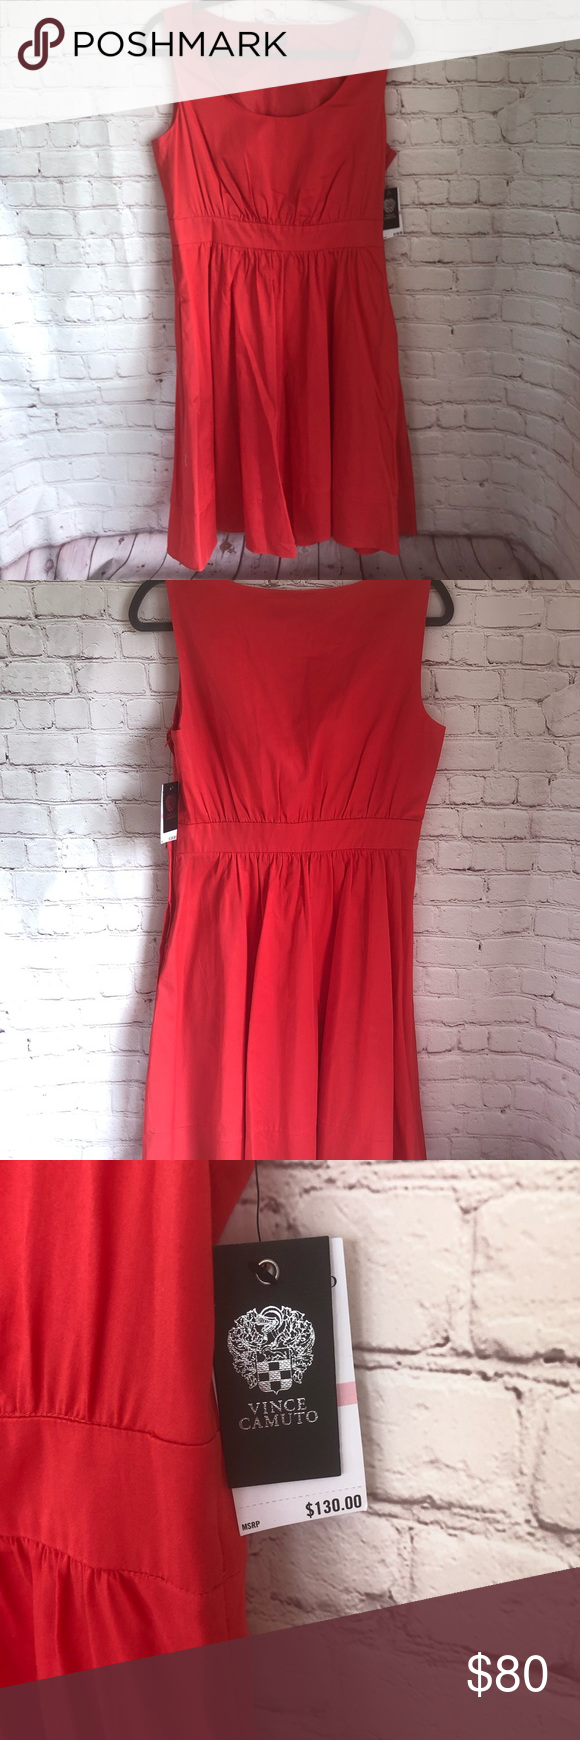 Vince Camuto St Tropez Dress Bnwt This Color Is So Beautiful It S A Mix Of Red Pink And Coral Ve Long Maxi Shirt Dress Clothes Design Fit And Flare Dress [ 1740 x 580 Pixel ]